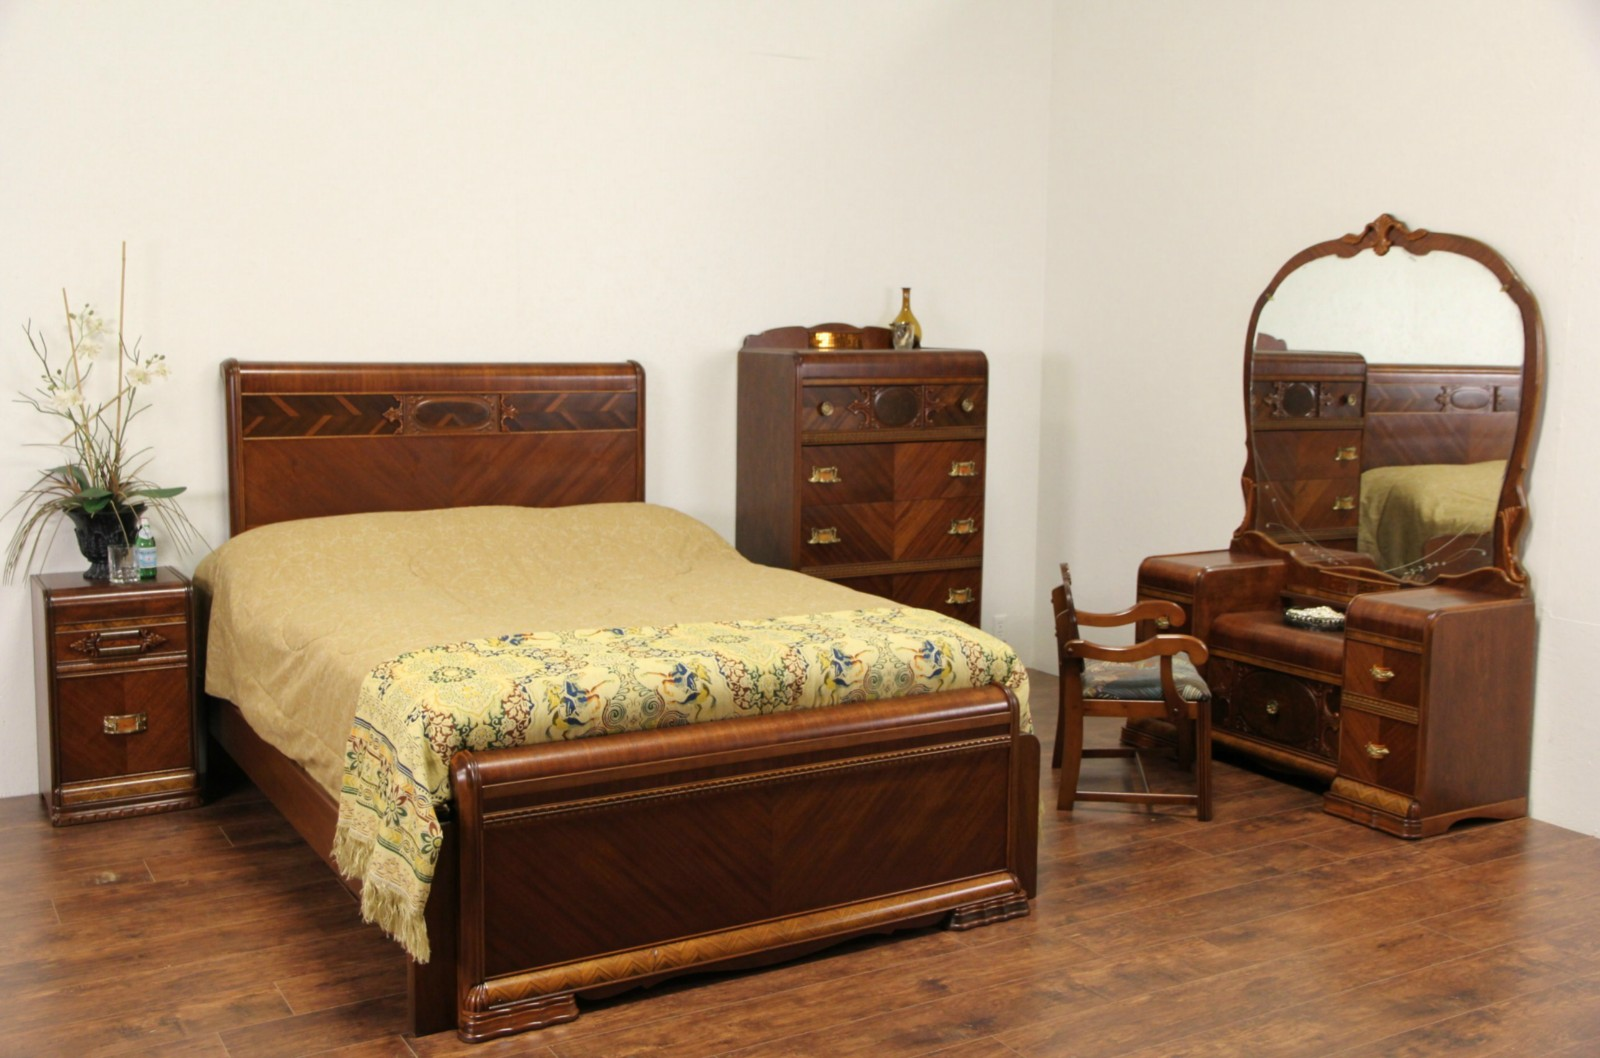 Art Deco Waterfall 5 Pc. Queen Size 1940 Vintage Bedroom Set, Bakelite  Pulls ...